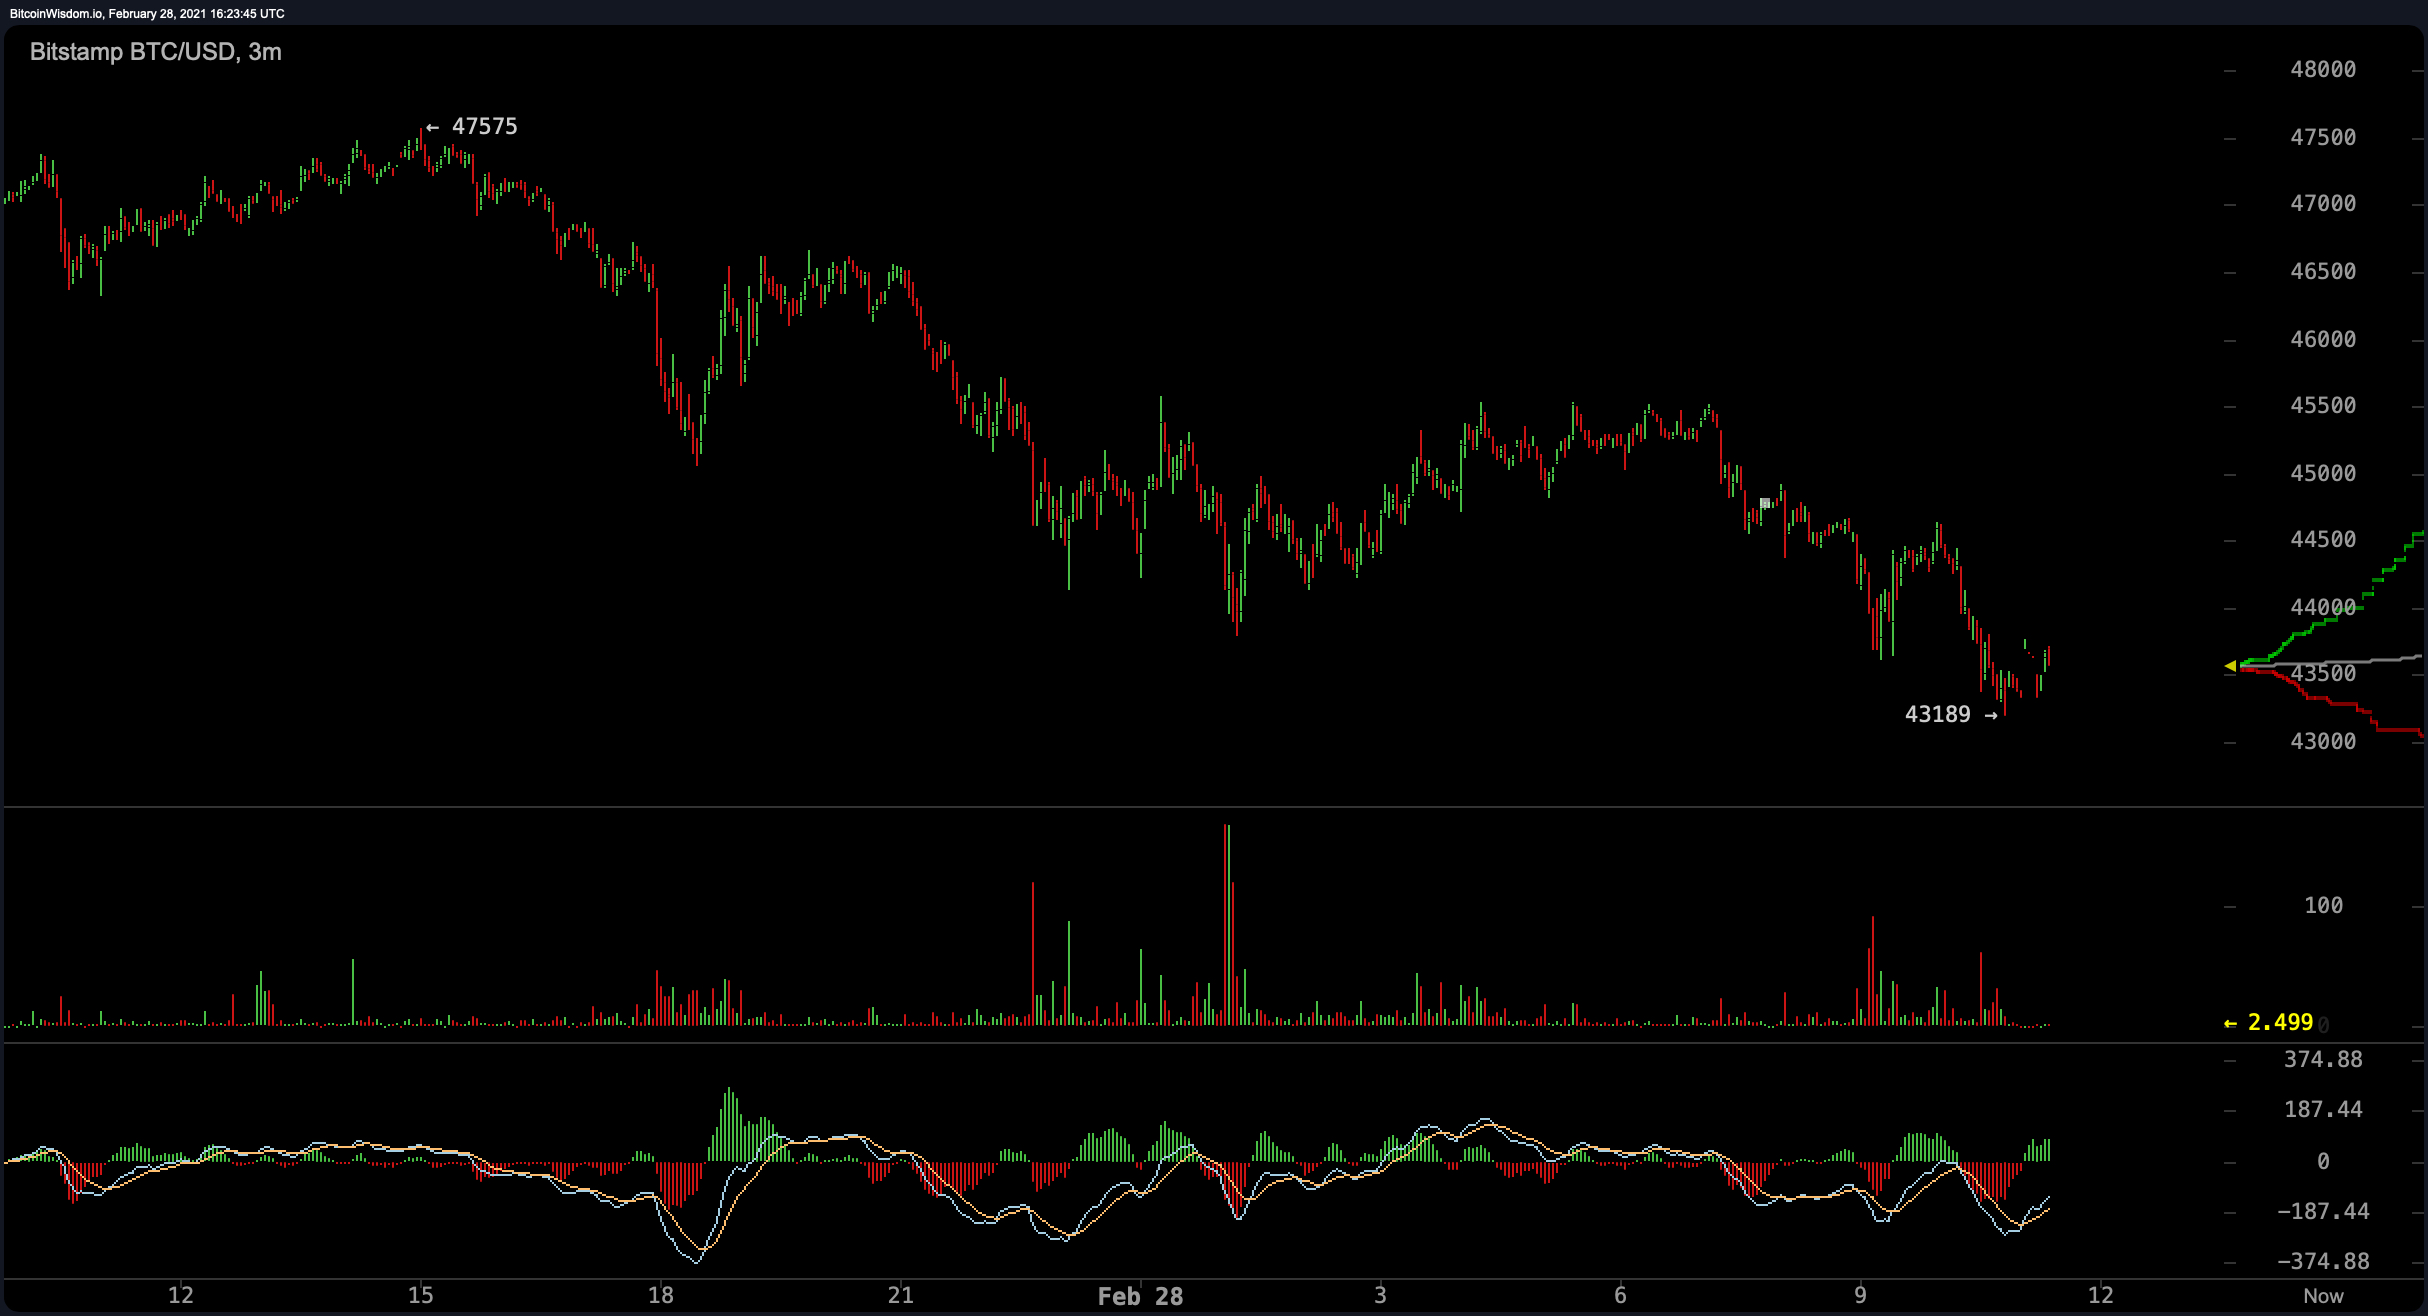 Bearish Outlook as Bitcoin's Seven-Day Average Sinks 25%, ADA Shines During the Storm